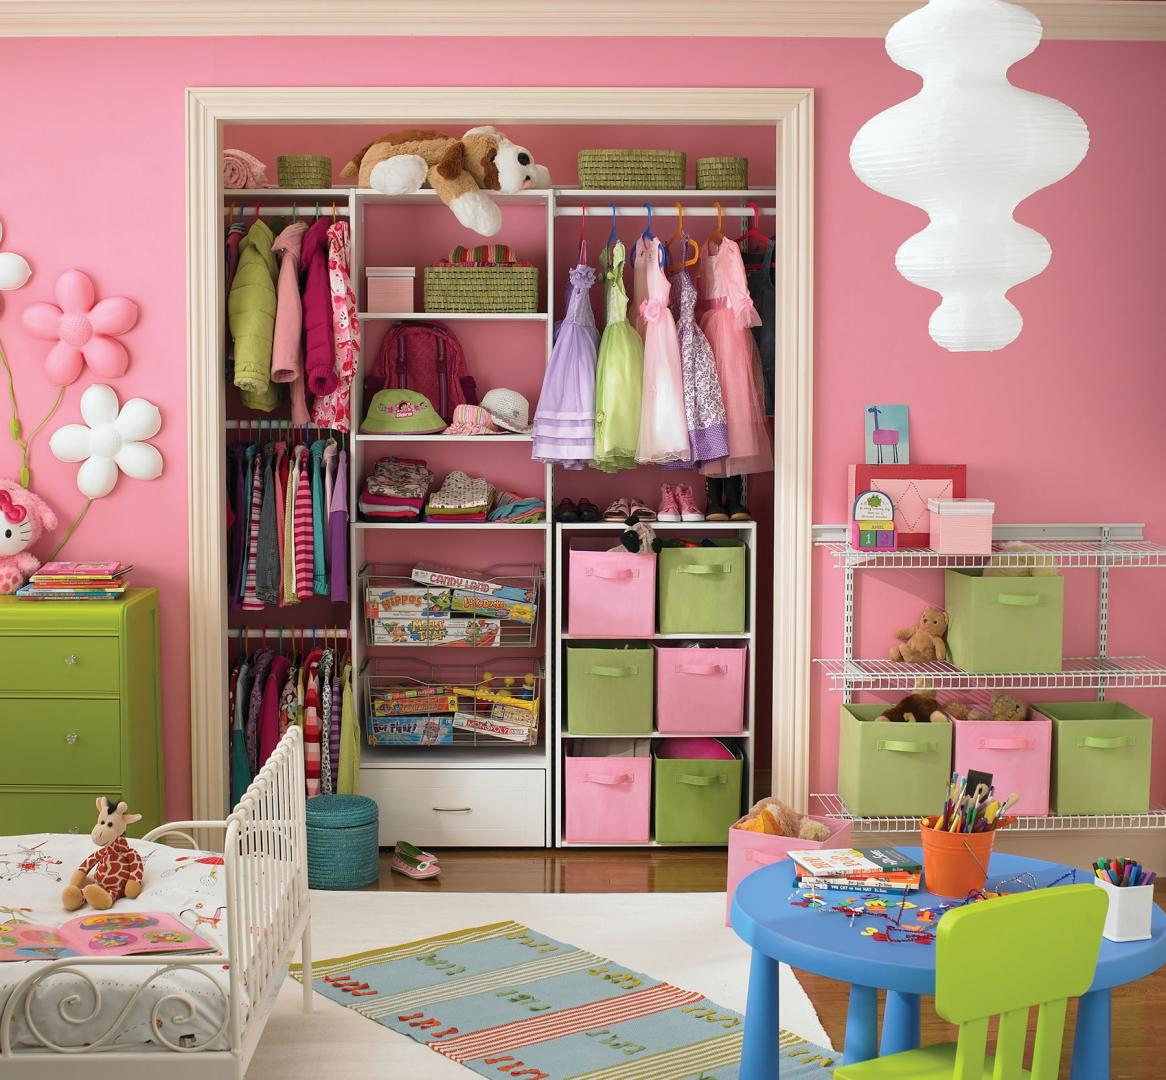 How to Organise Your Children's Closet So They Can Learn Independence.docx